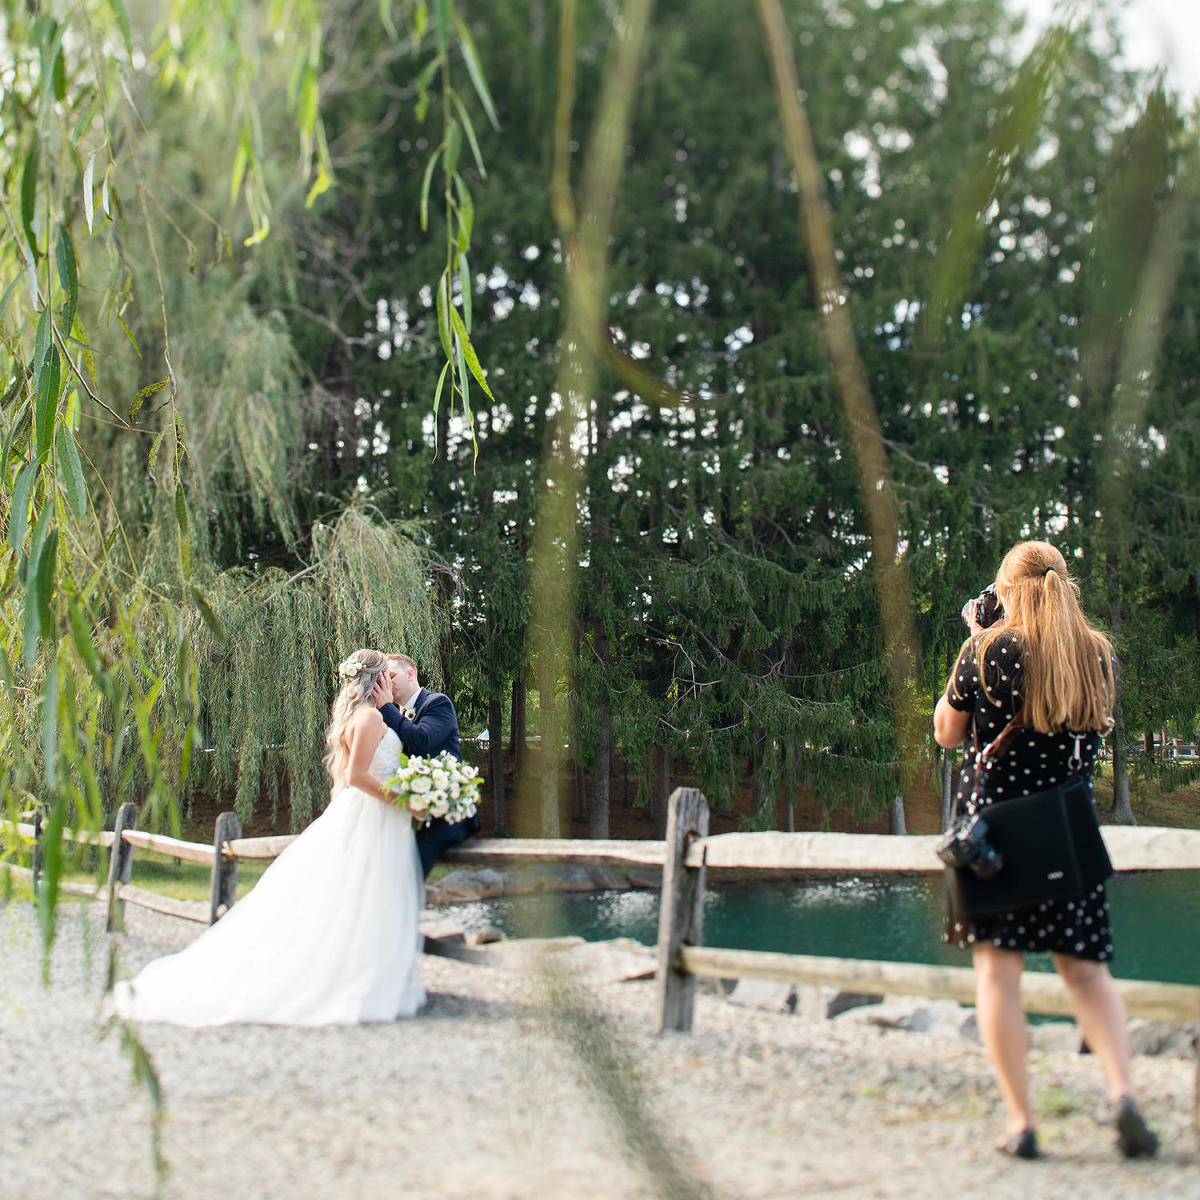 South Jersey Wedding Photographer Behind the Scenes Images